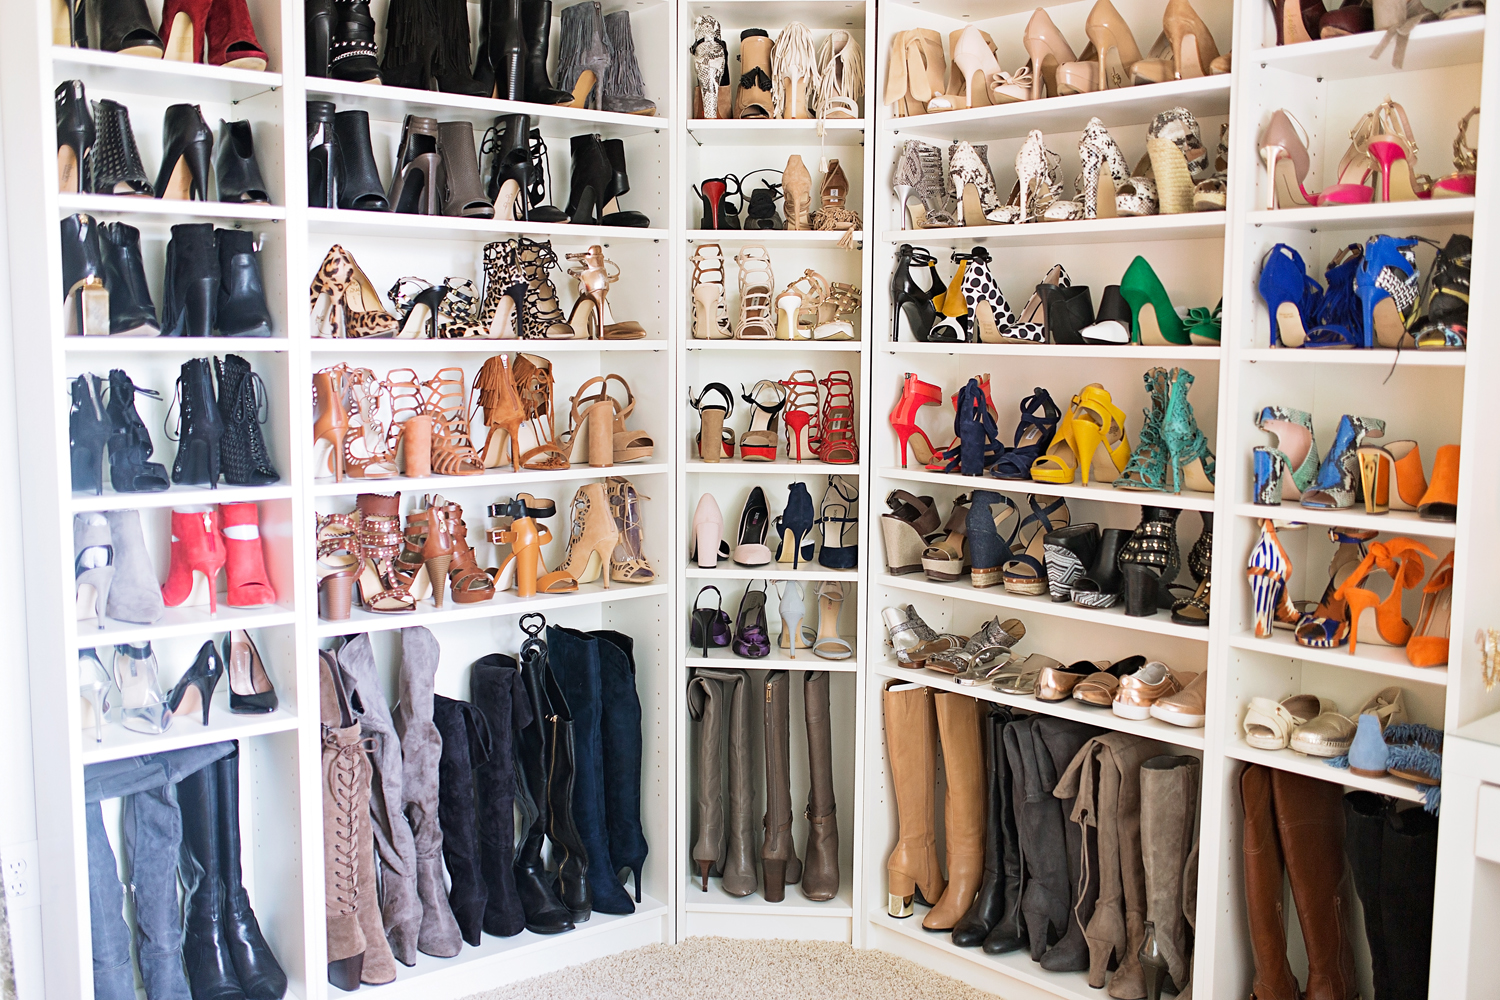 Ordinaire Dream Shoe Closet, Ikea Shoe Closet, Ikea Hacks, Diy Shoe Closet, Dallas